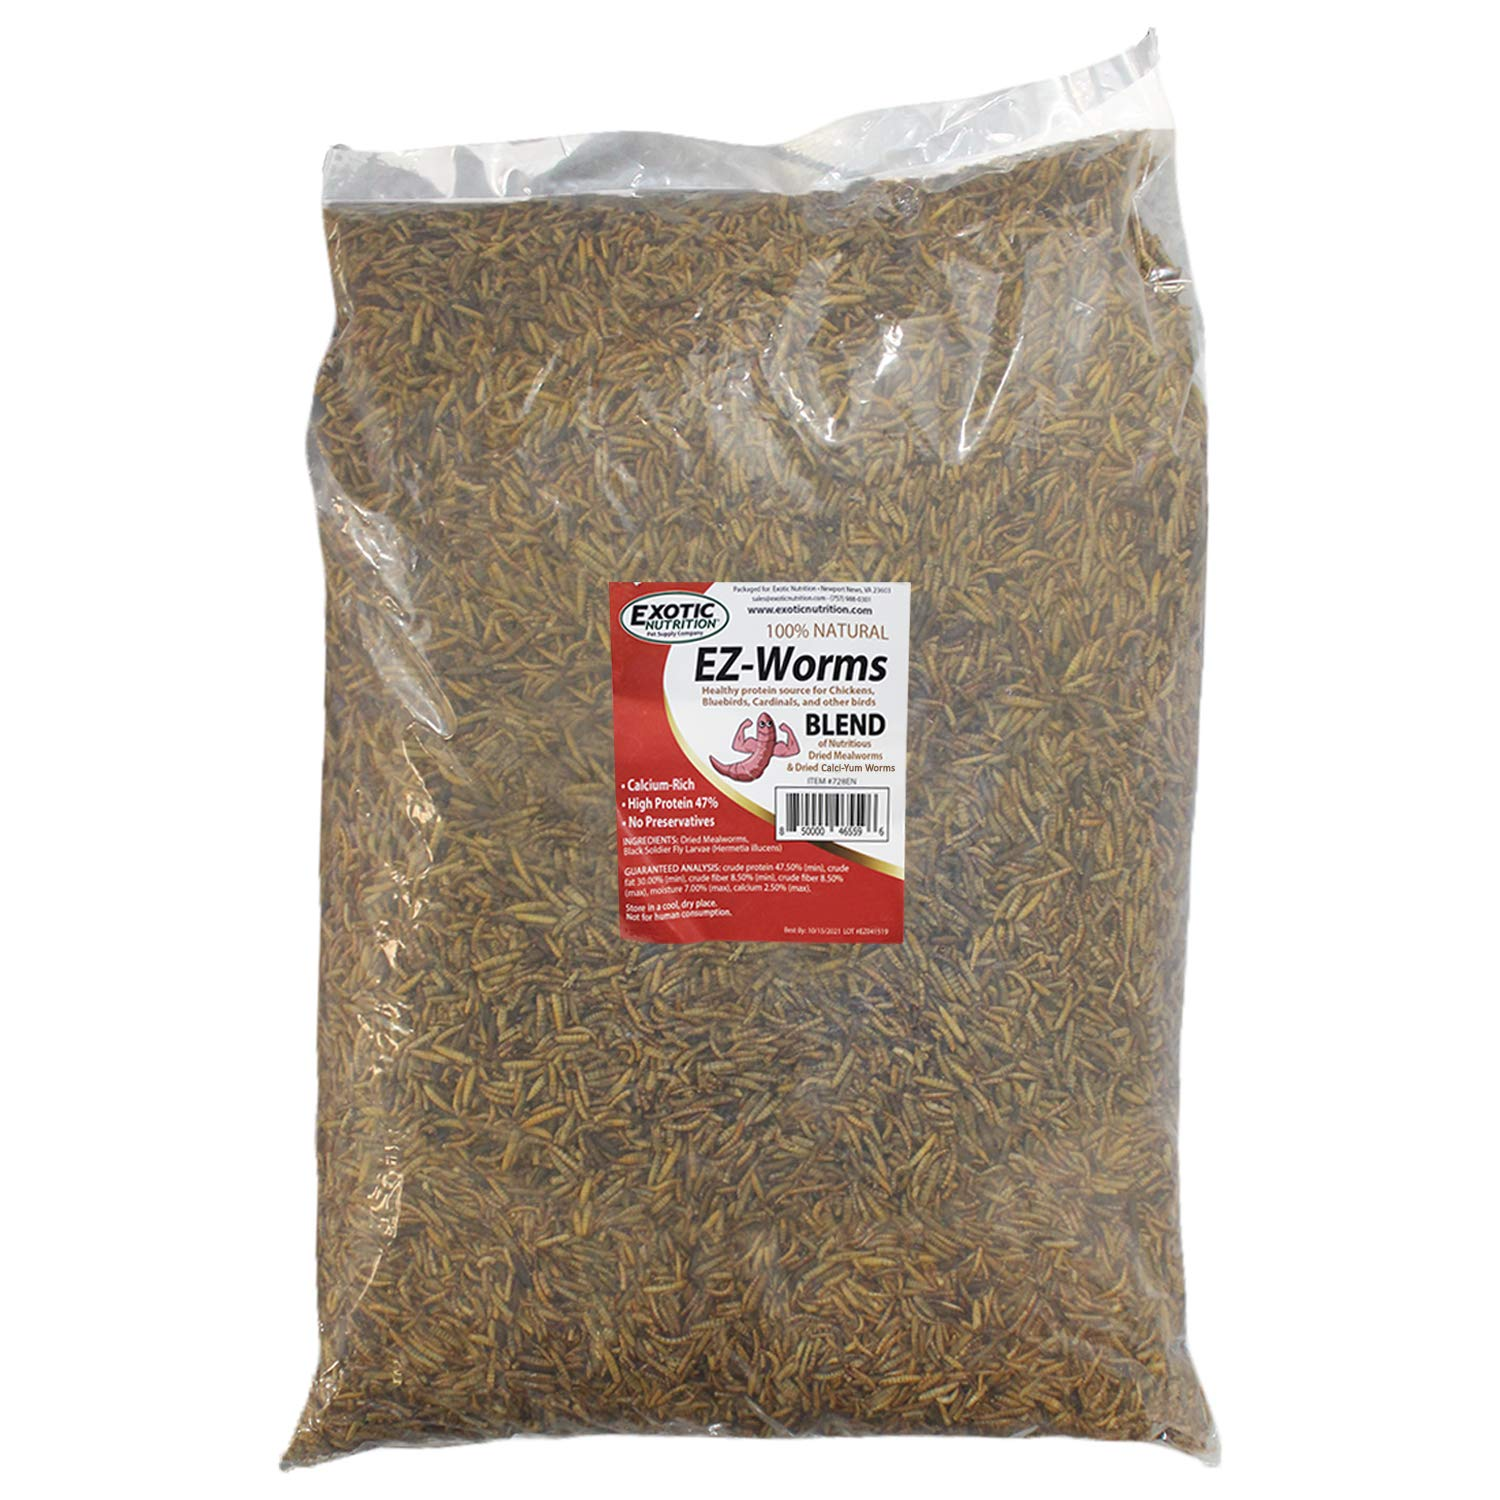 EZ-Worms (10 lb) - Blend of Dried Mealworms & Black Soldier Fly Larvae (BSFL) - Healthy Insect Treat - Chickens, Bluebirds, Sugar Gliders, Hedgehogs, Squirrels, Skunks, Reptiles, Turtles, Fish by Exotic Nutrition